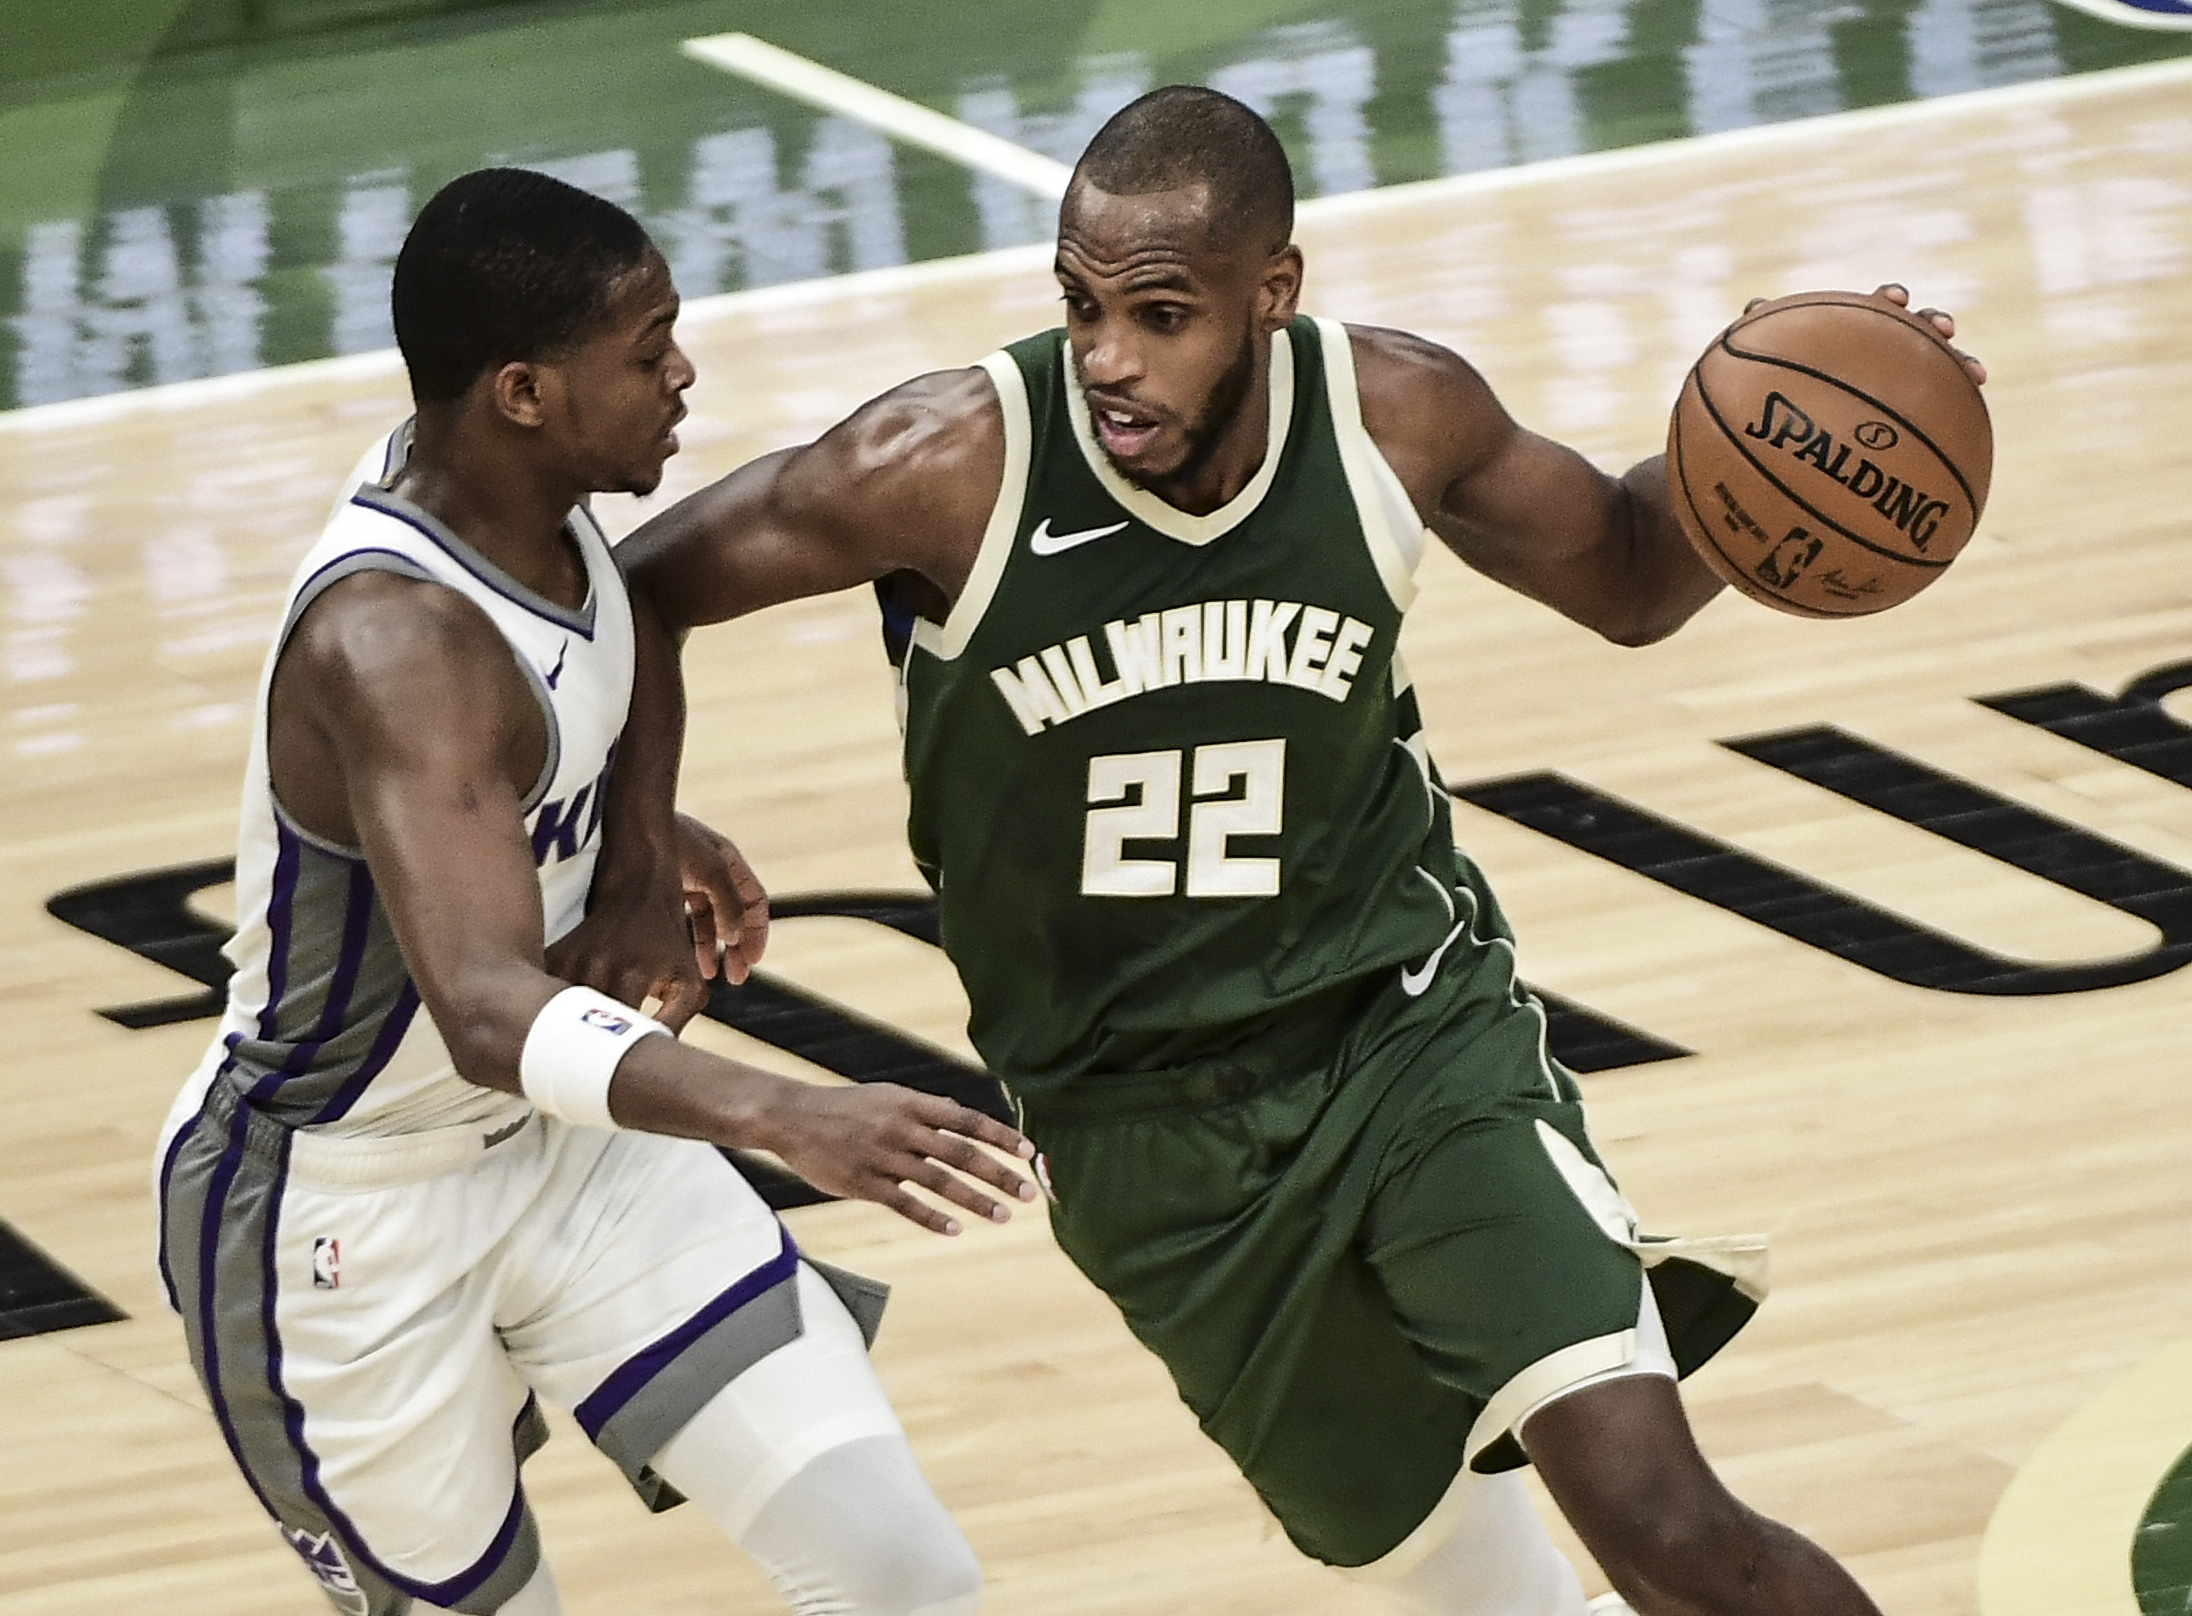 Feb 21, 2021; Milwaukee, Wisconsin, USA; Milwaukee Bucks forward Khris Middleton (22) drives for the basket against Sacramento Kings guard De'Aaron Fox (5) in the third quarter at Fiserv Forum.